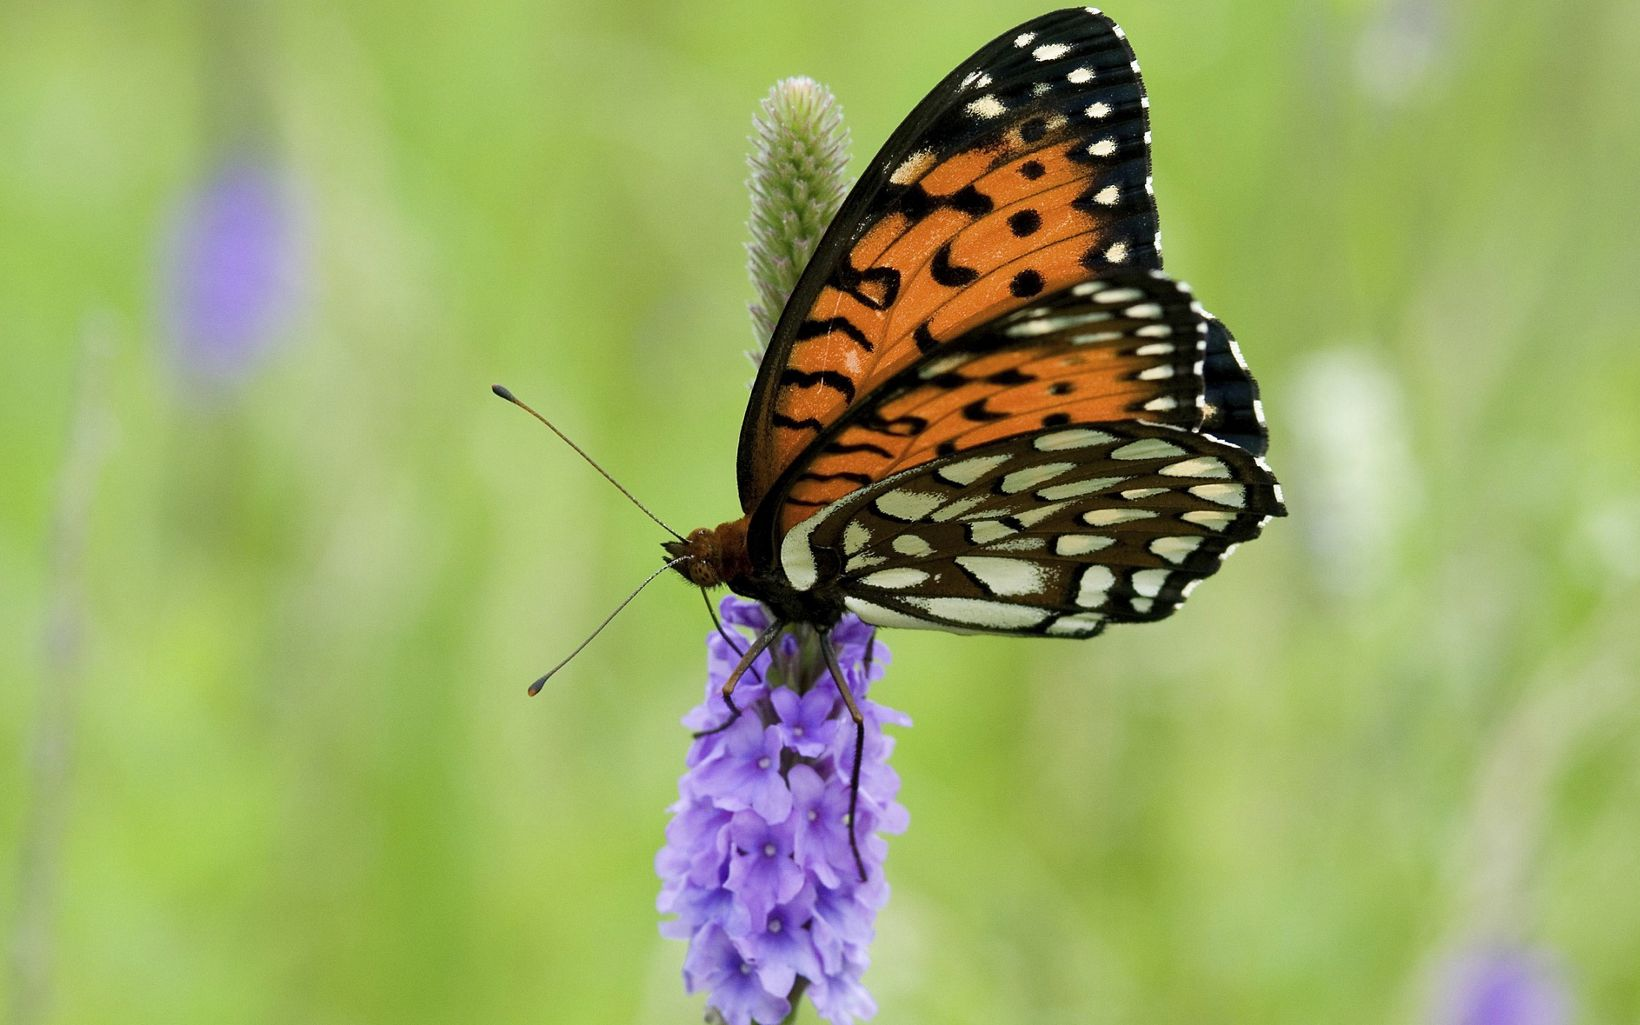 A rare sight in Wisconsin today, regal fritillaries nectar on milkweeds and thistles.